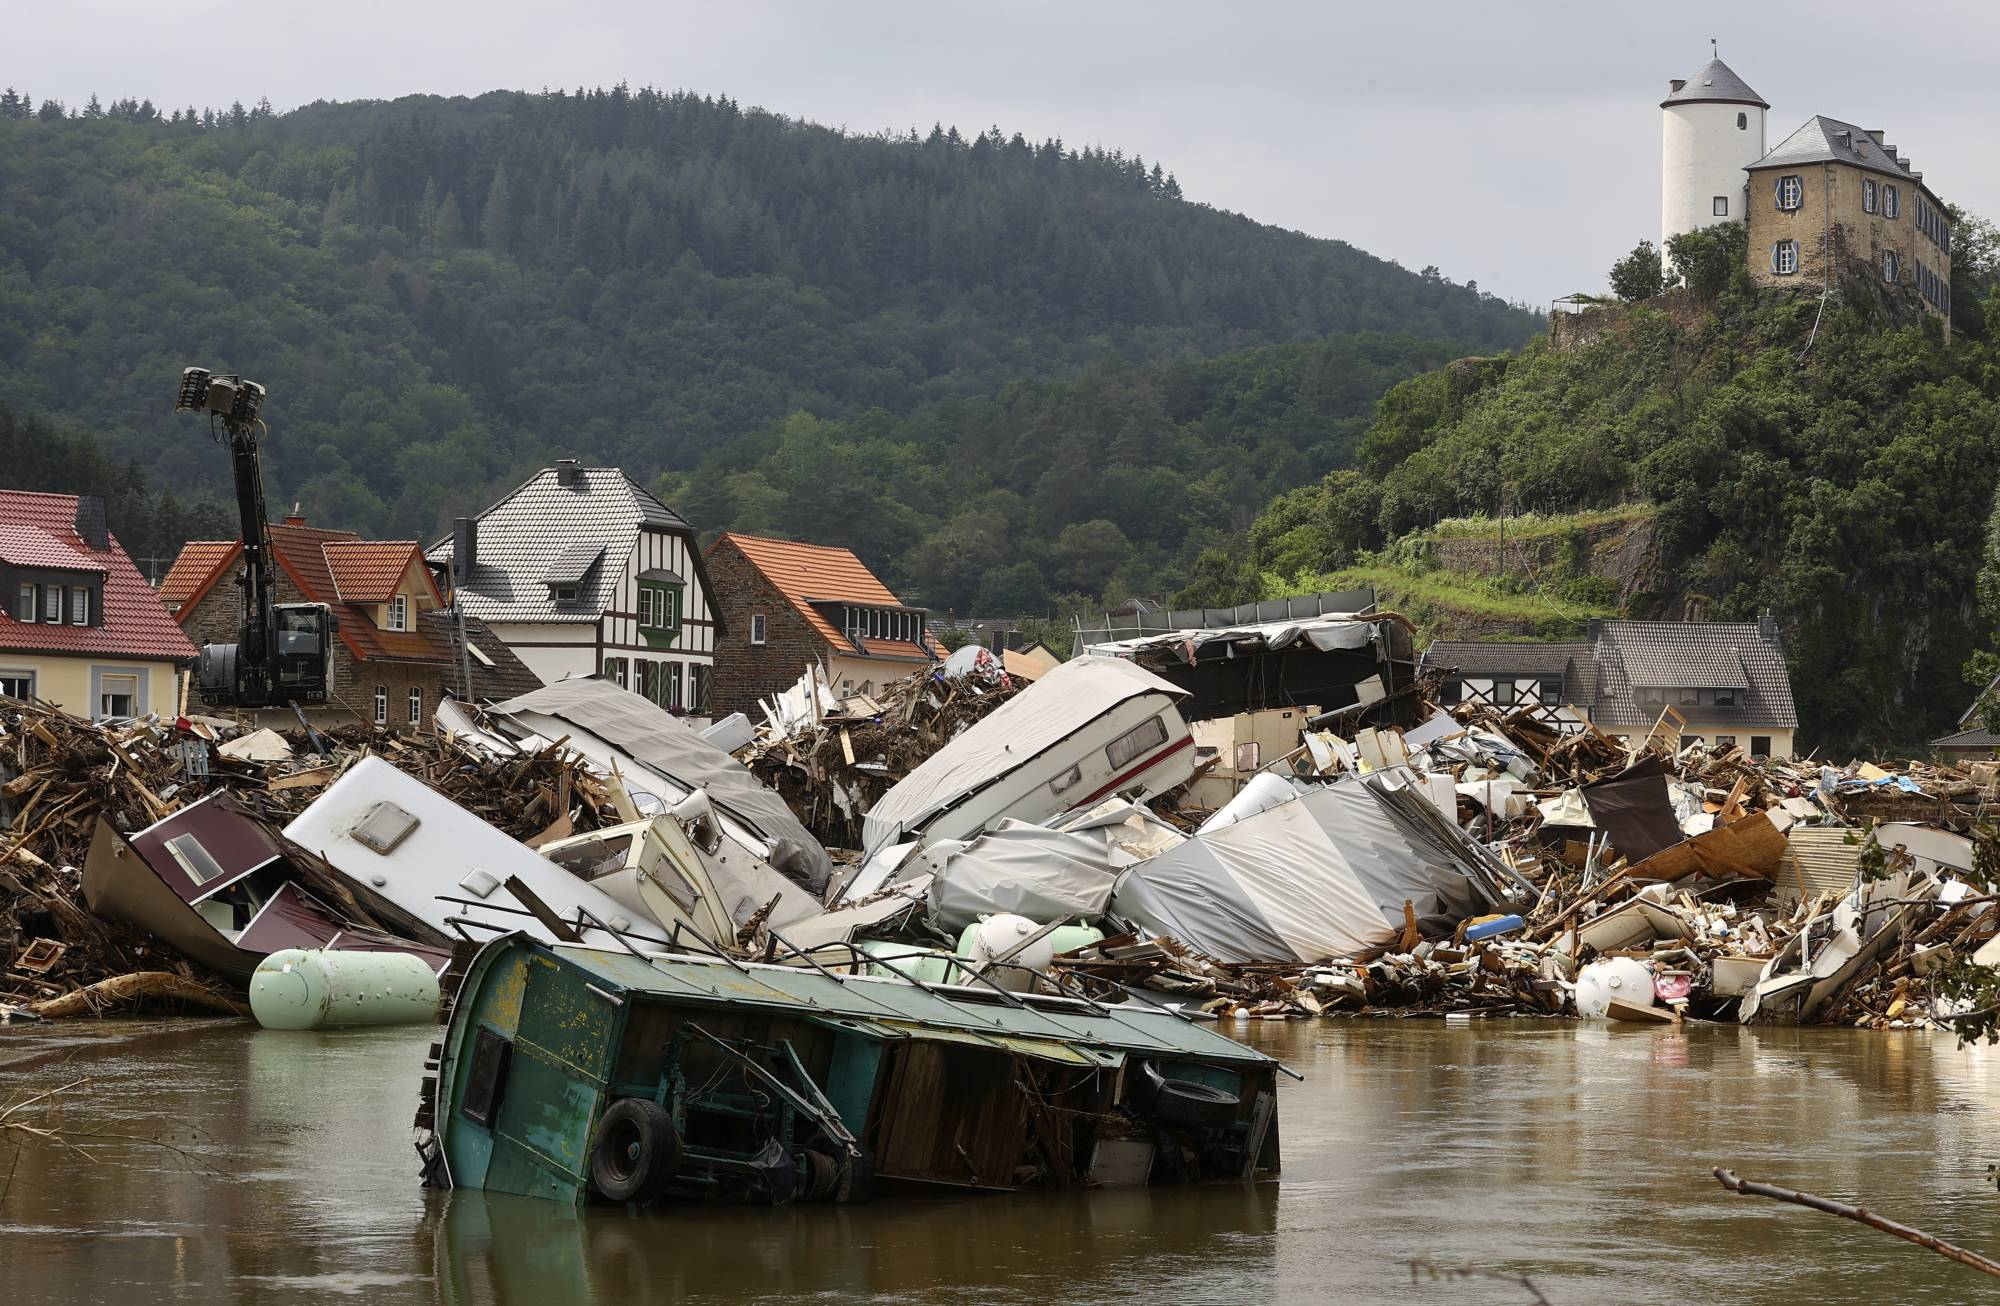 Destroyed caravans in an area affected by floods caused by heavy rainfall in Kreuzberg, Germany, on July 19   REUTERS